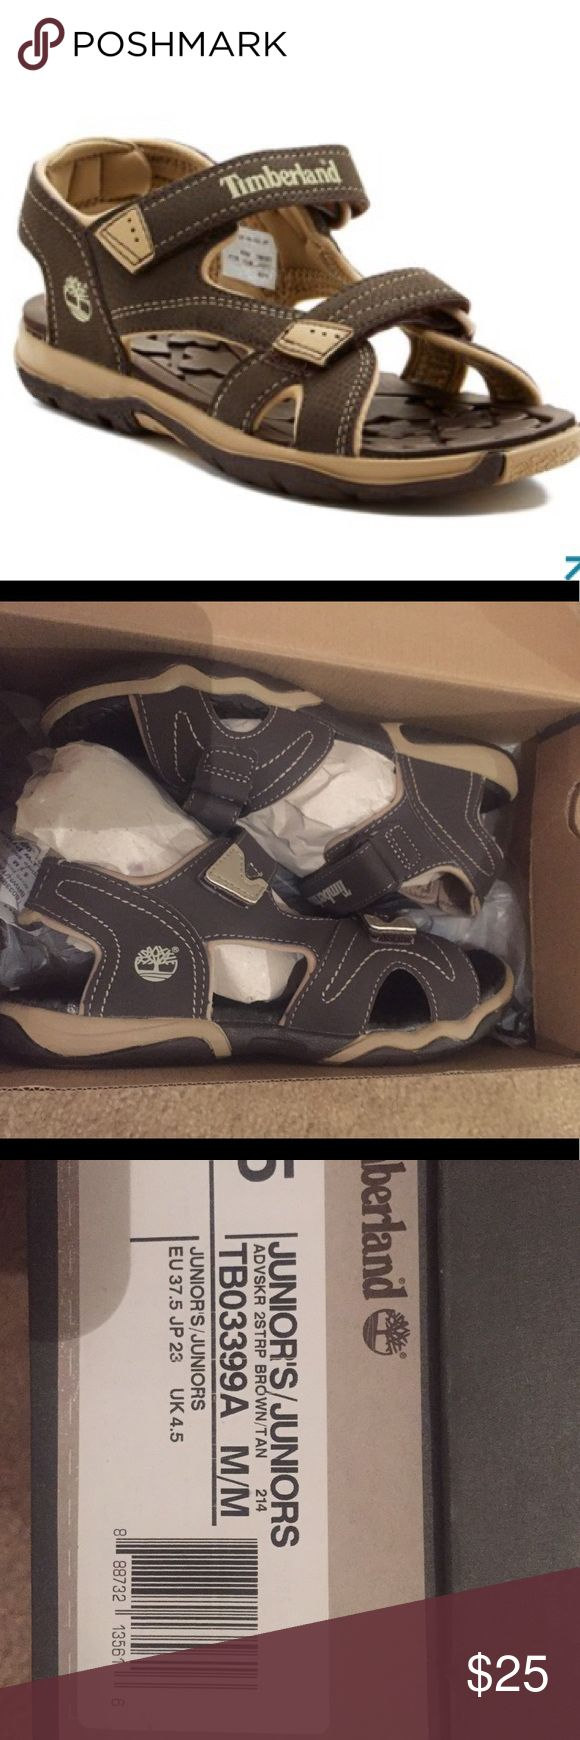 Timberland sandals New. Excellent condition, will come in original packaging. This is juniors boys so I believe a woman's size 6.5/7 will fit bc I'm an 8.5 and I need a little room on both ends. Color is a grey taupe shade. This is certainly a gender neutral shoe. Timberland Shoes